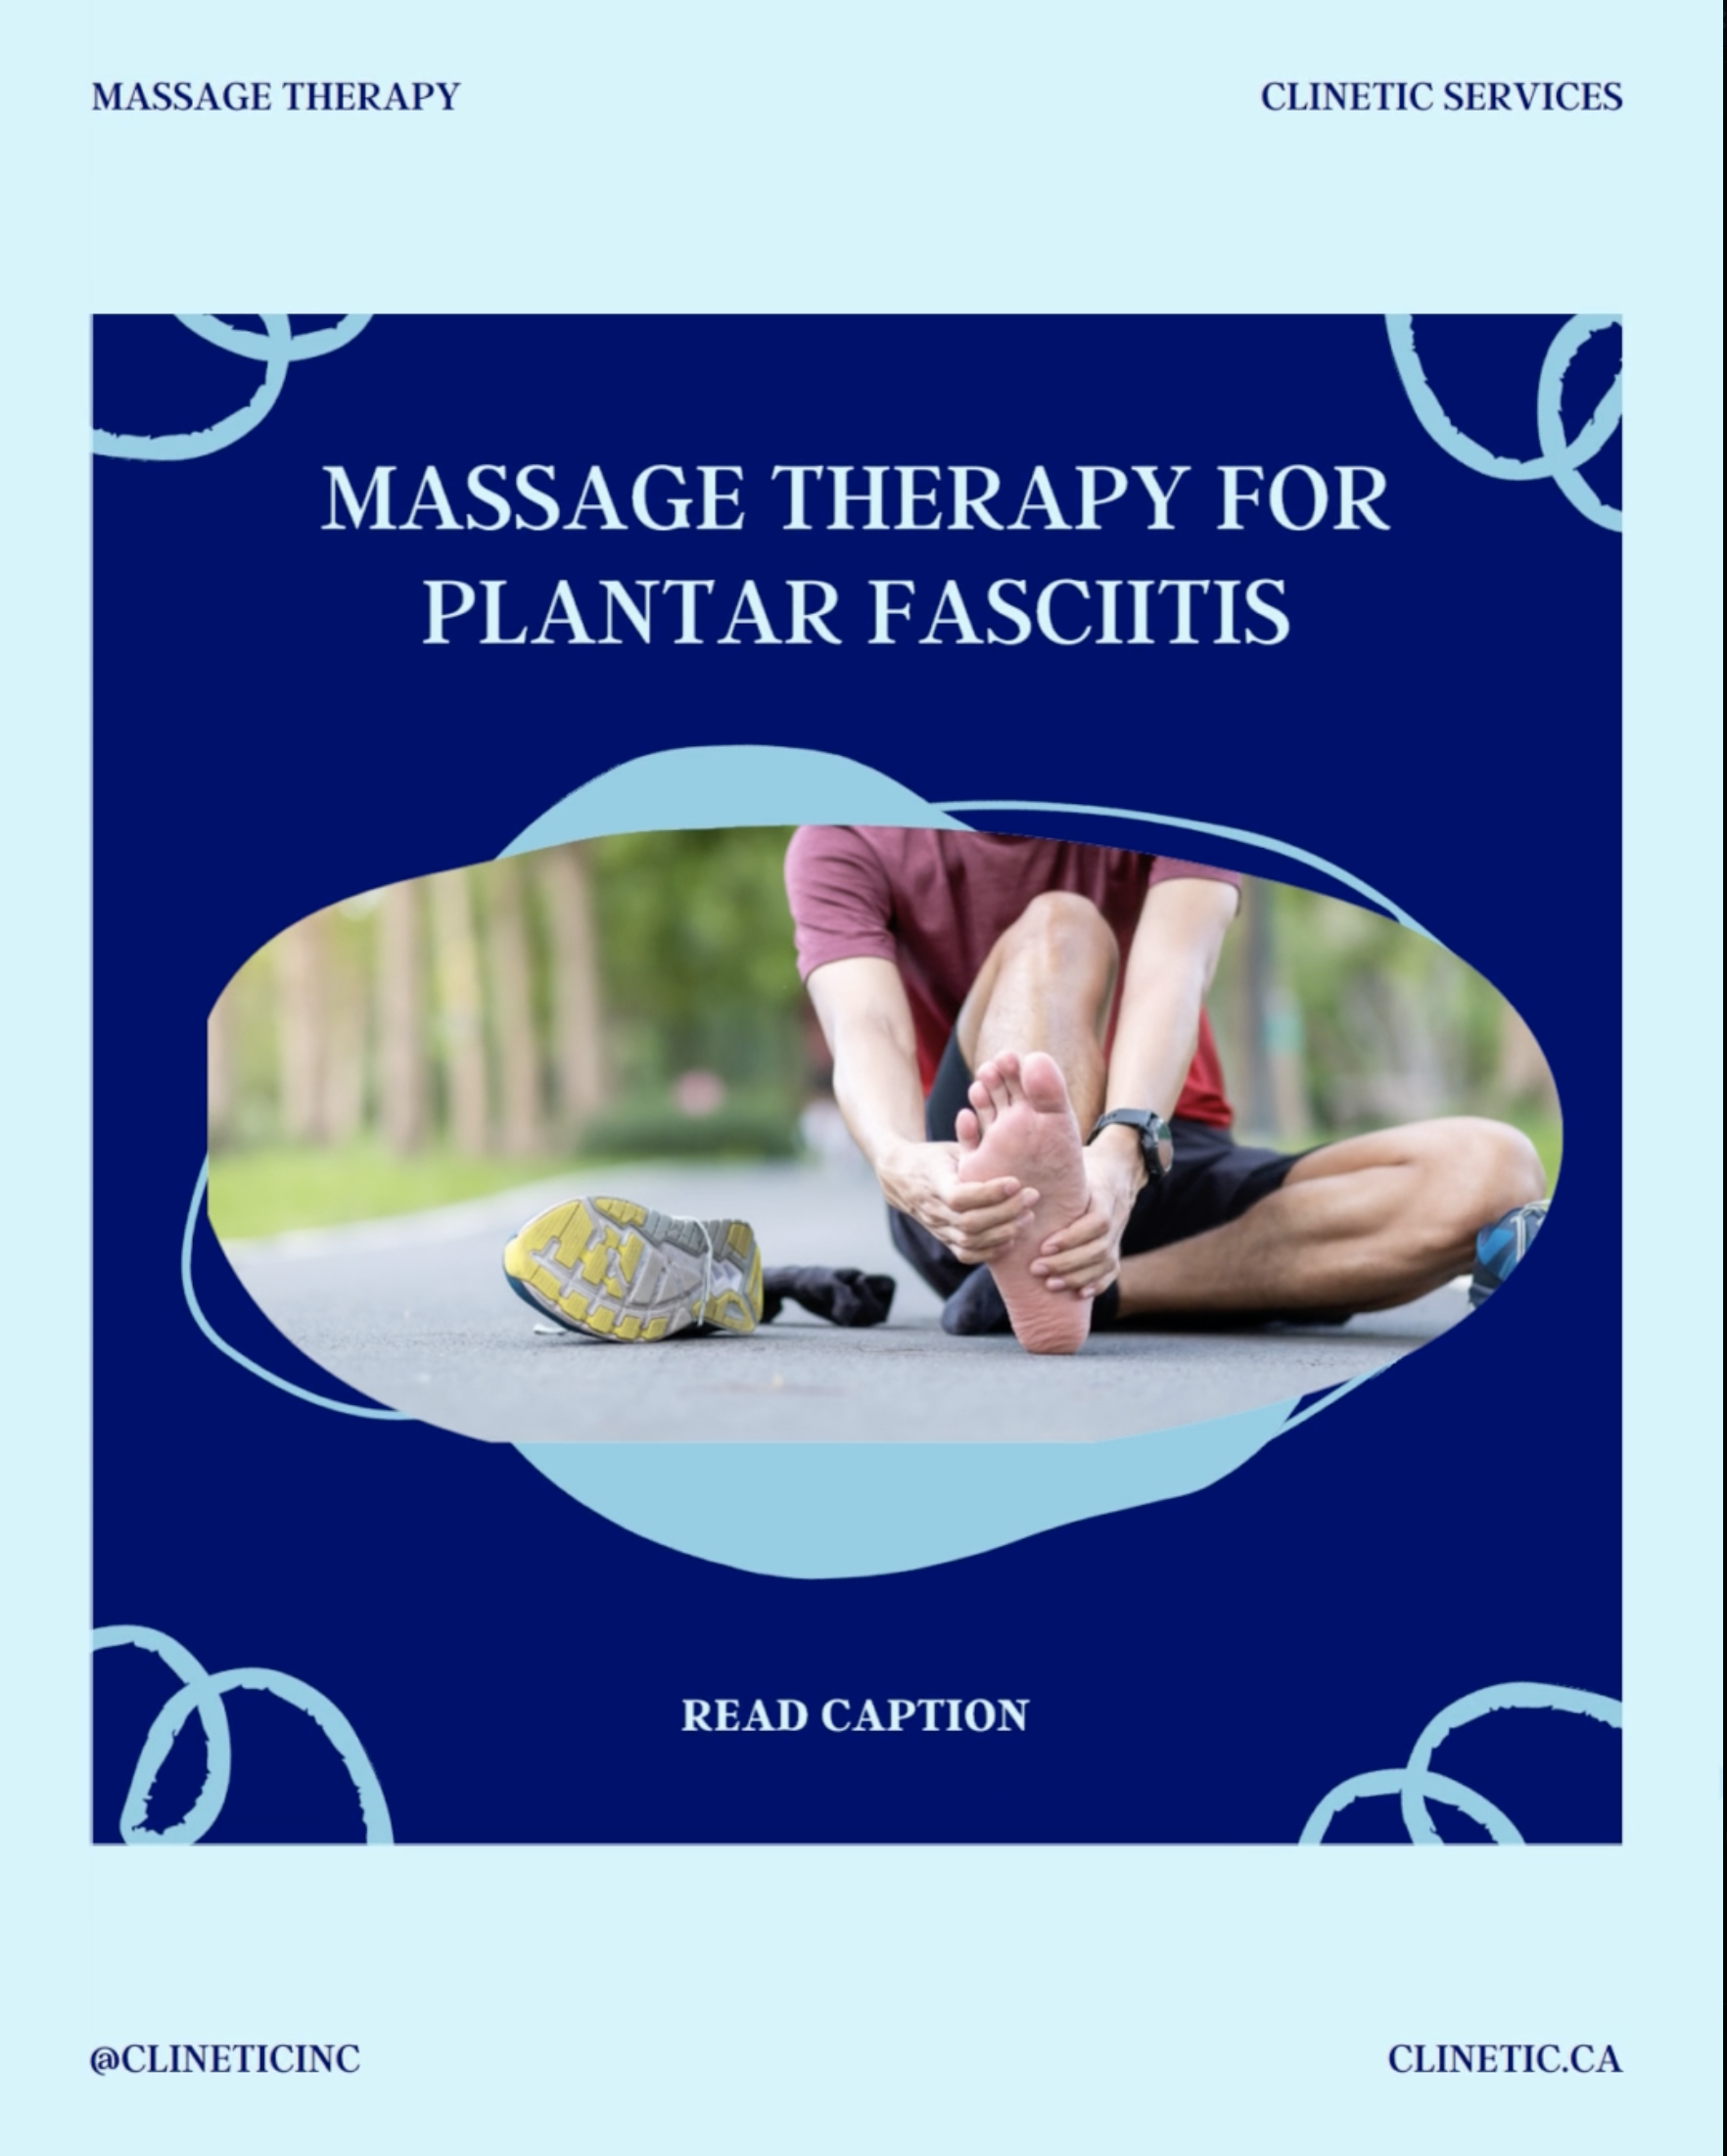 Massage Therapy for Plantar fasciitis